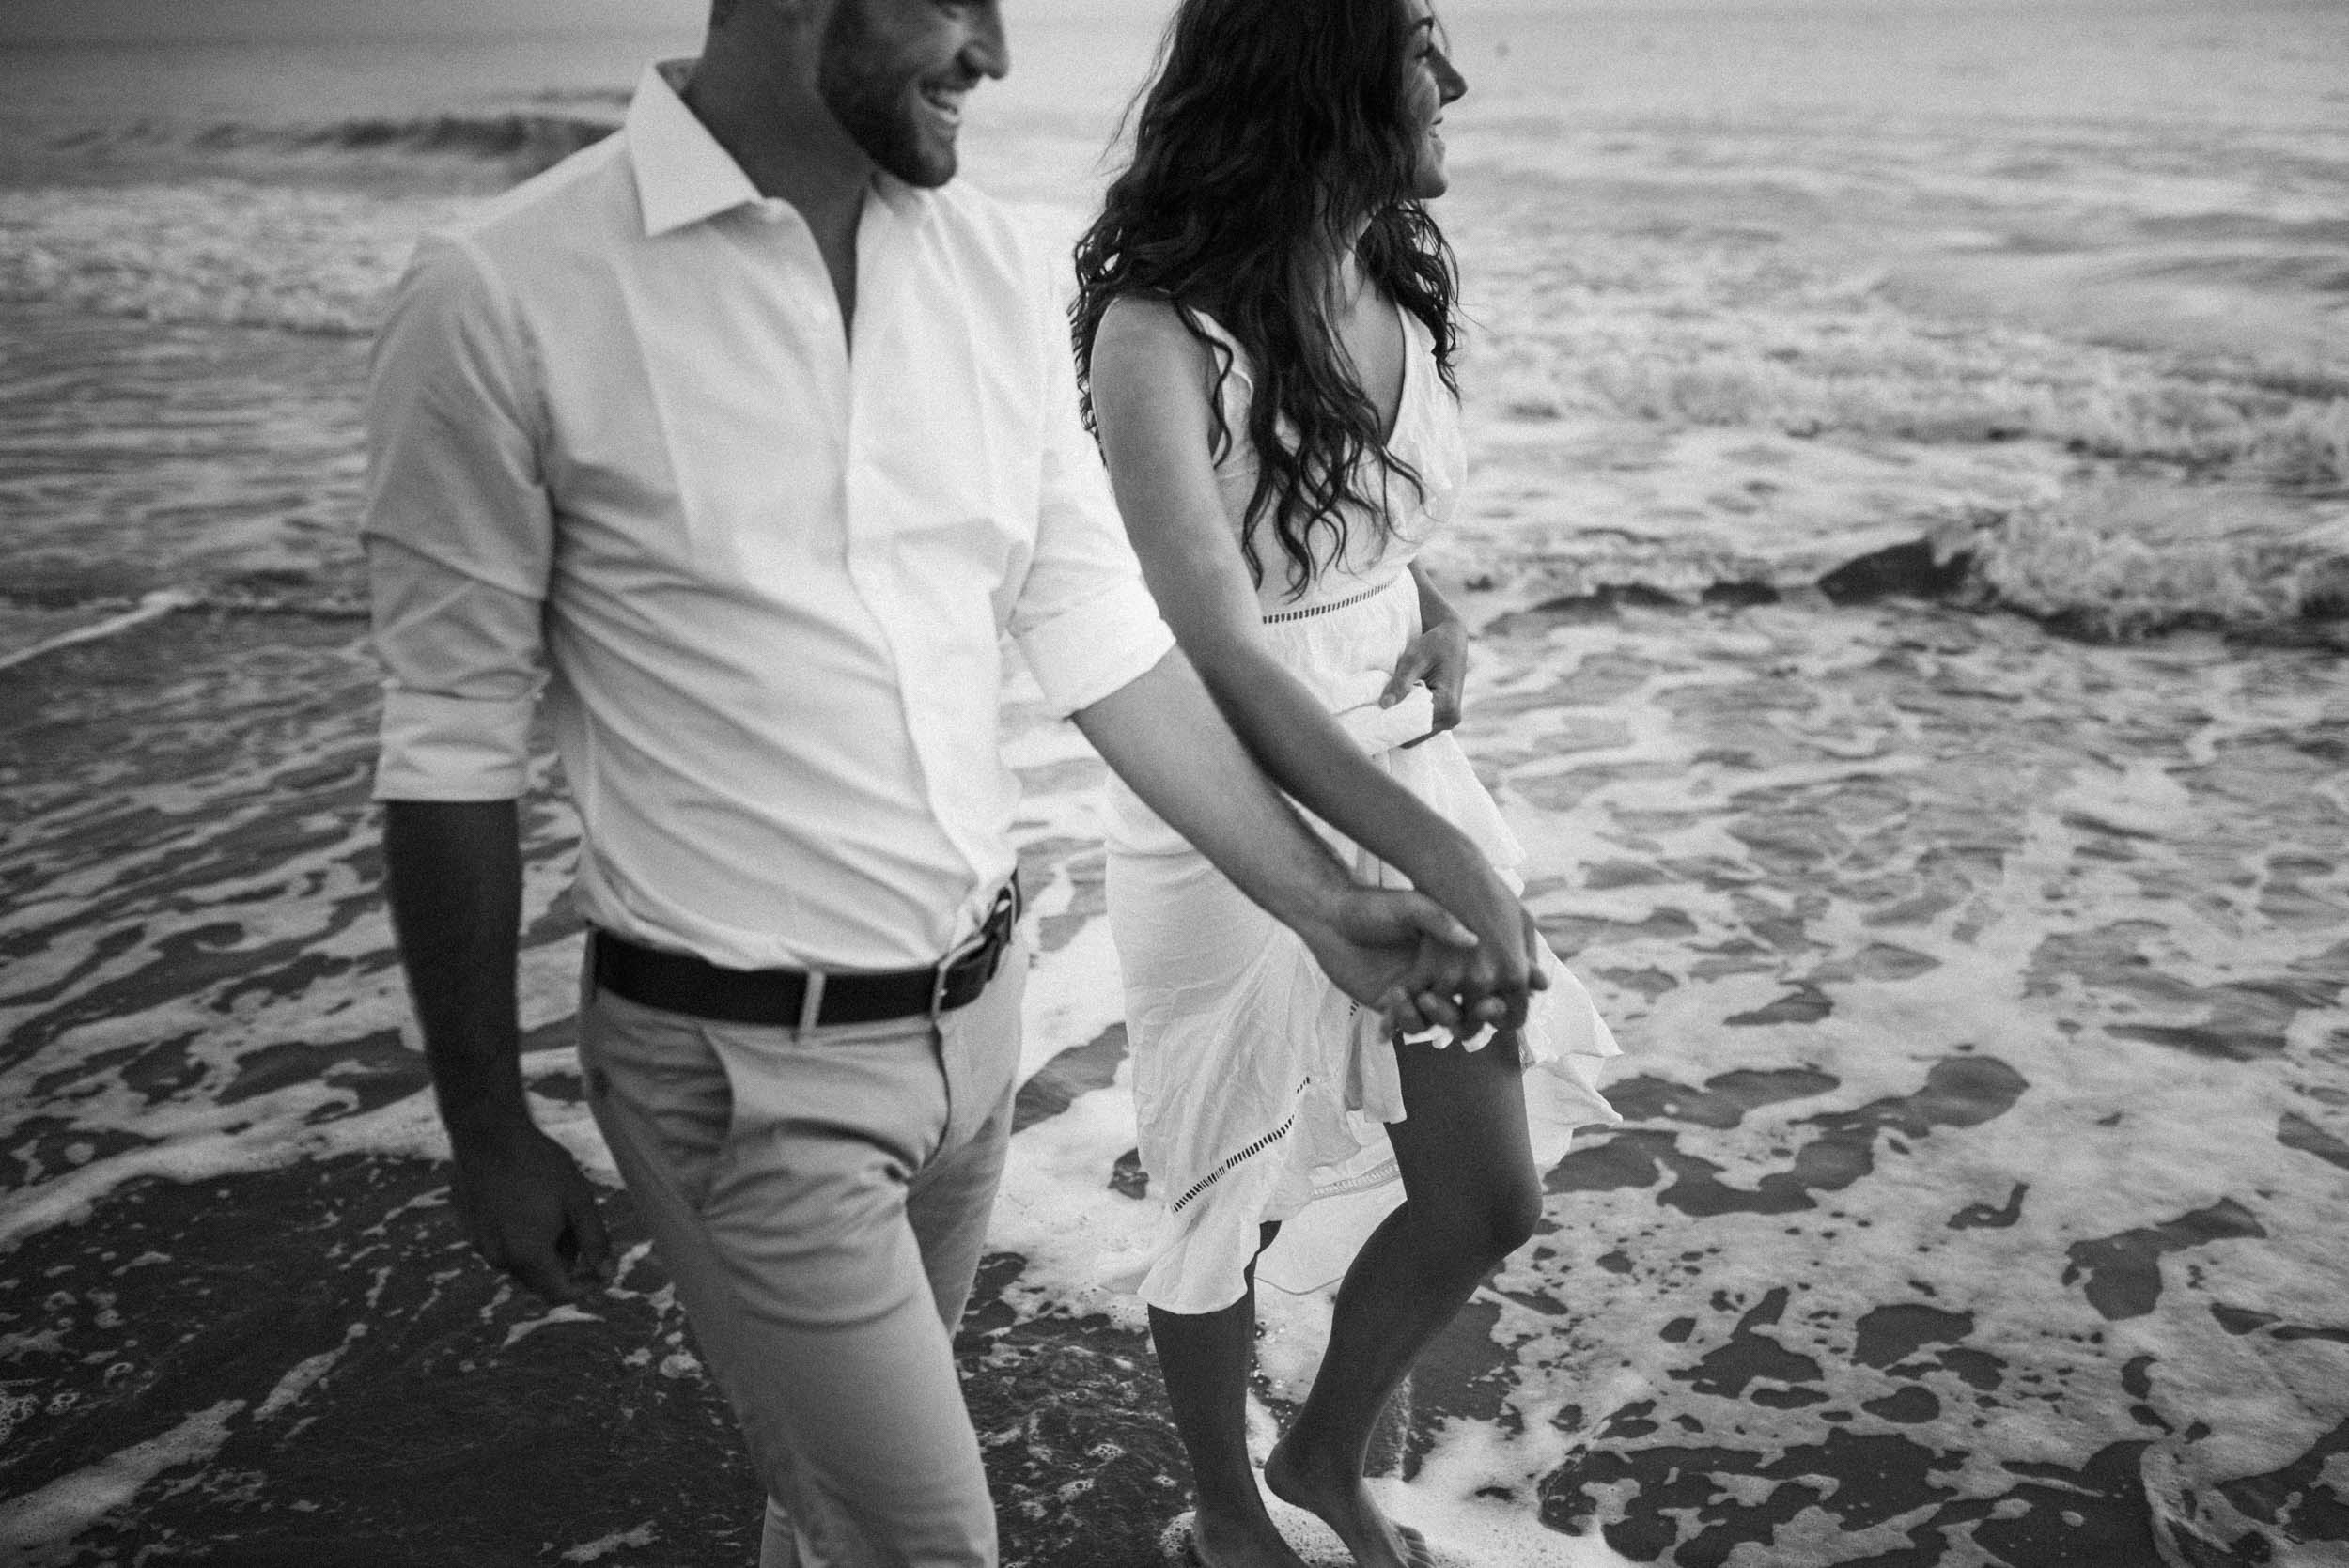 The Raw Photographer - Cairns Wedding Photographer - Engaged Engagement - Beach location - Candid Photography Queensland-4.jpg